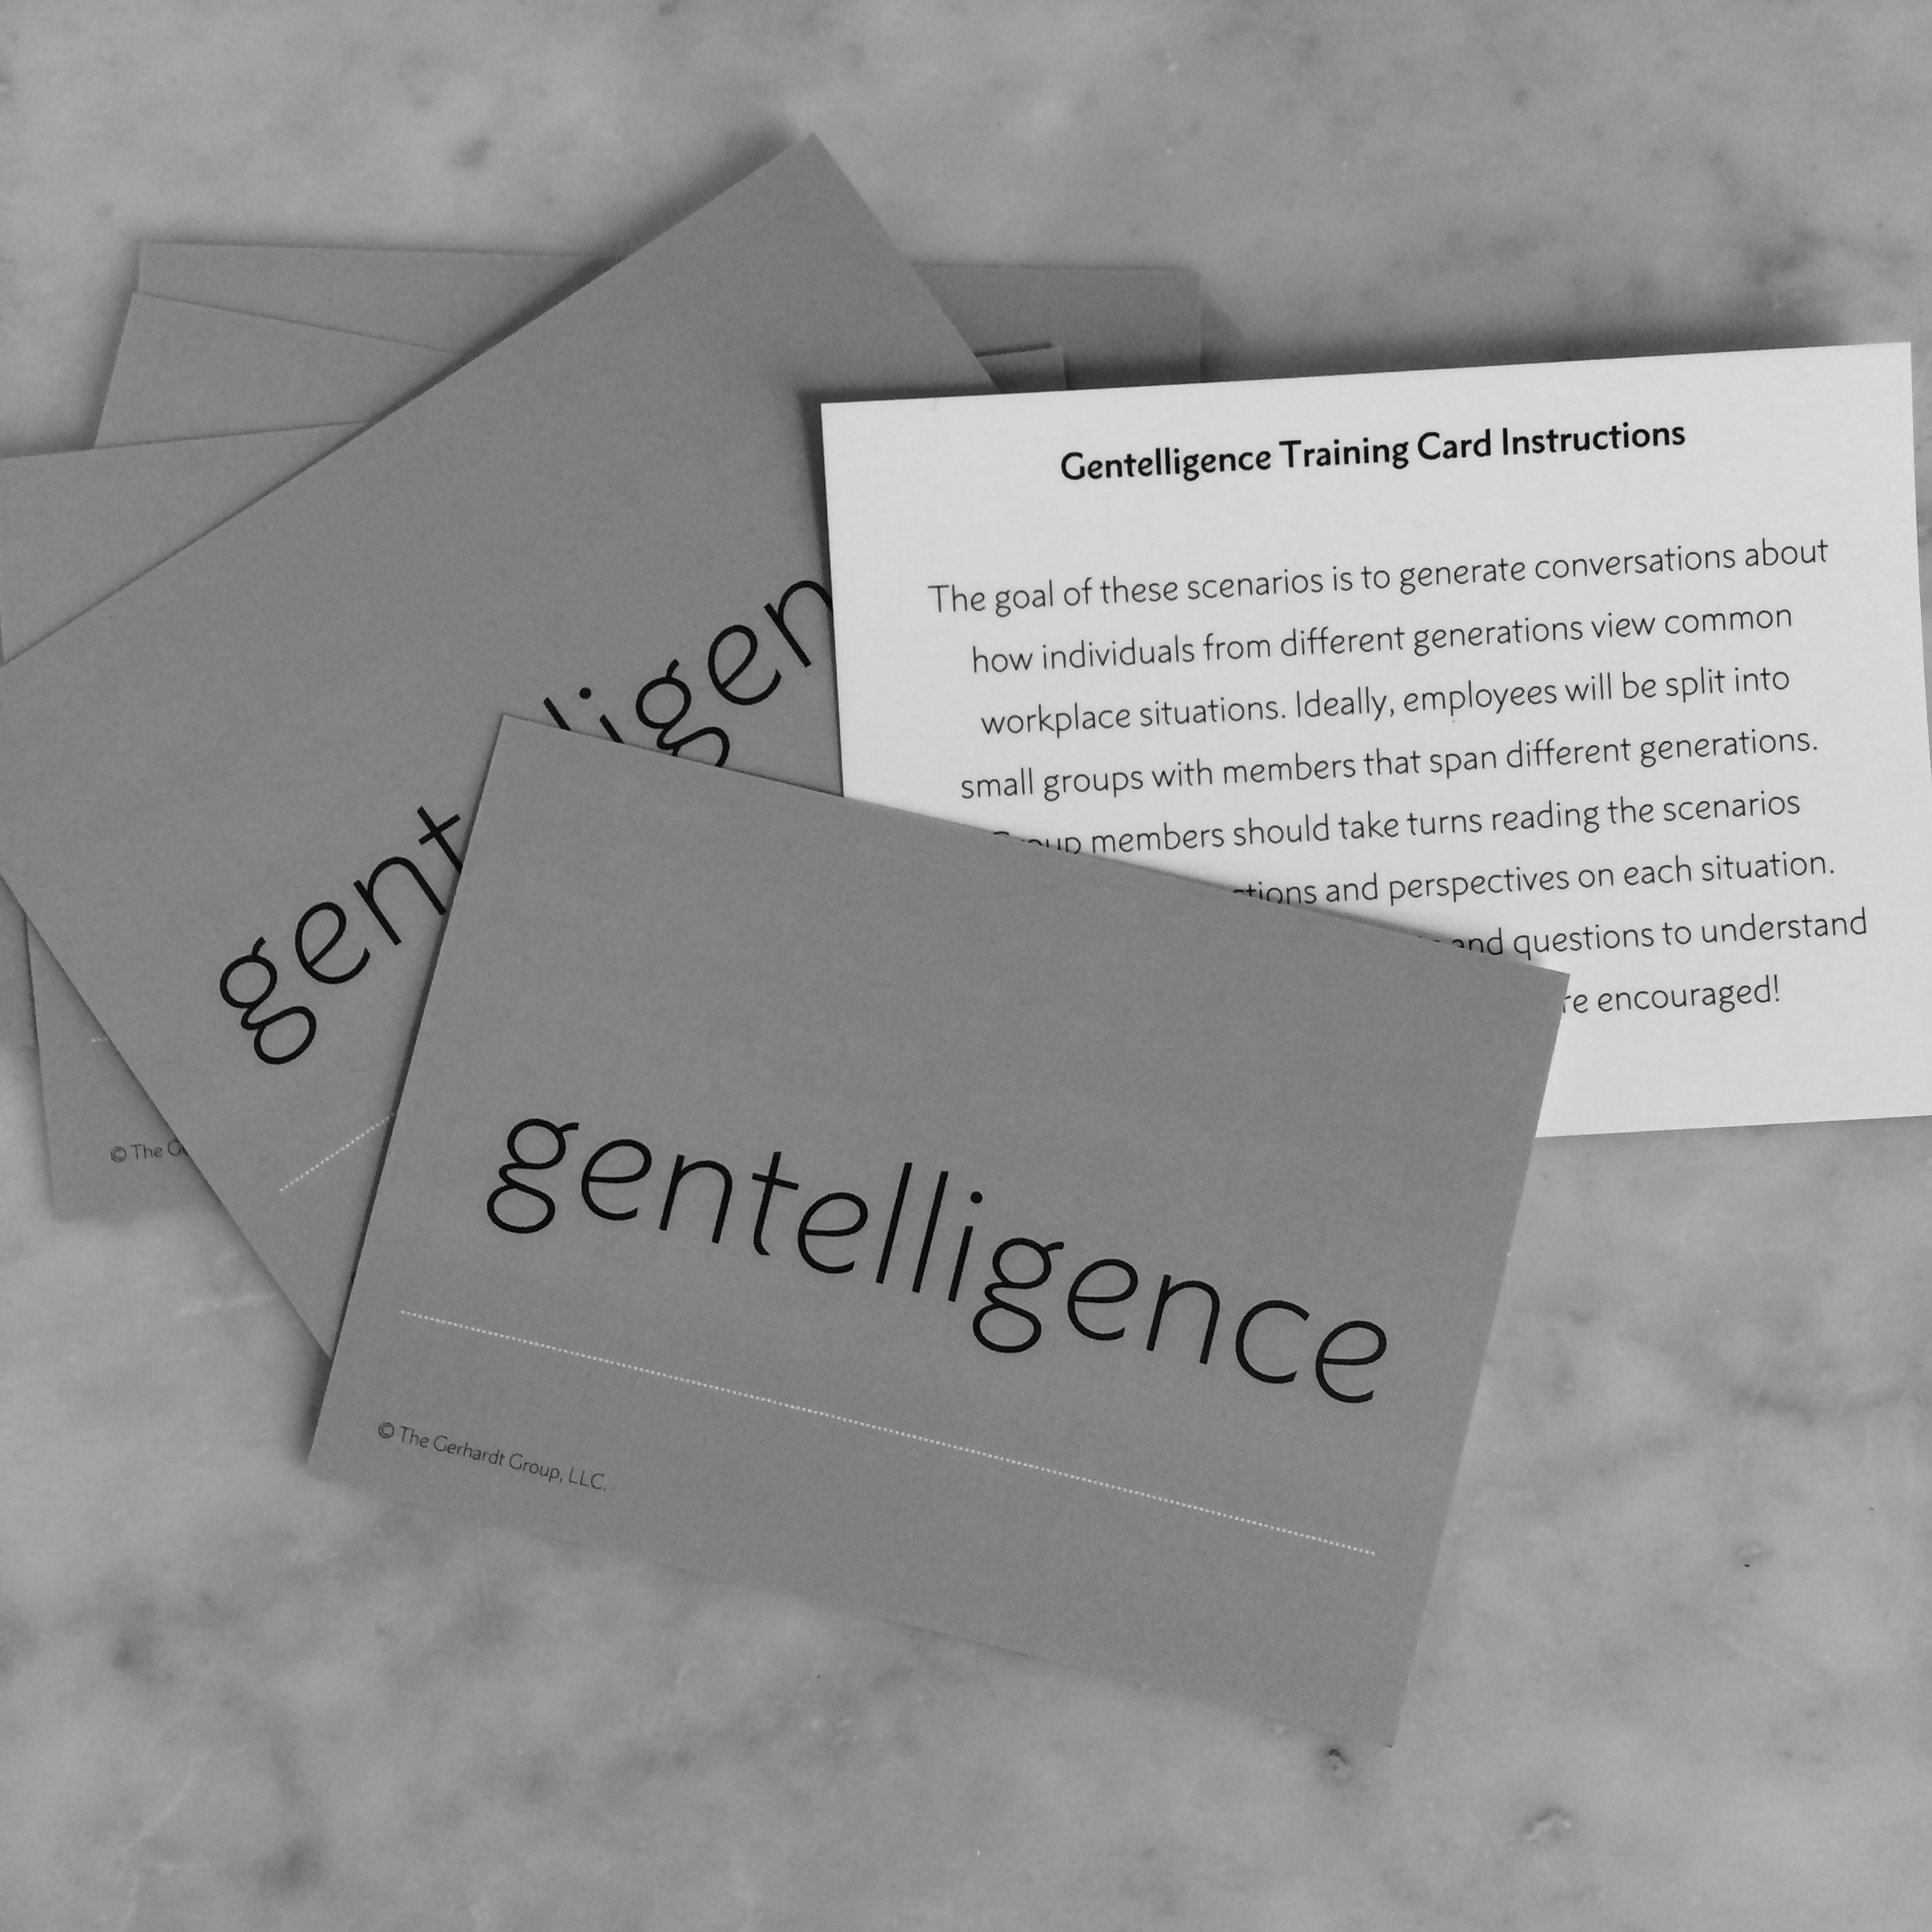 Buy your own Gentelligence2™ training materials & run your own Generational training at your organization!